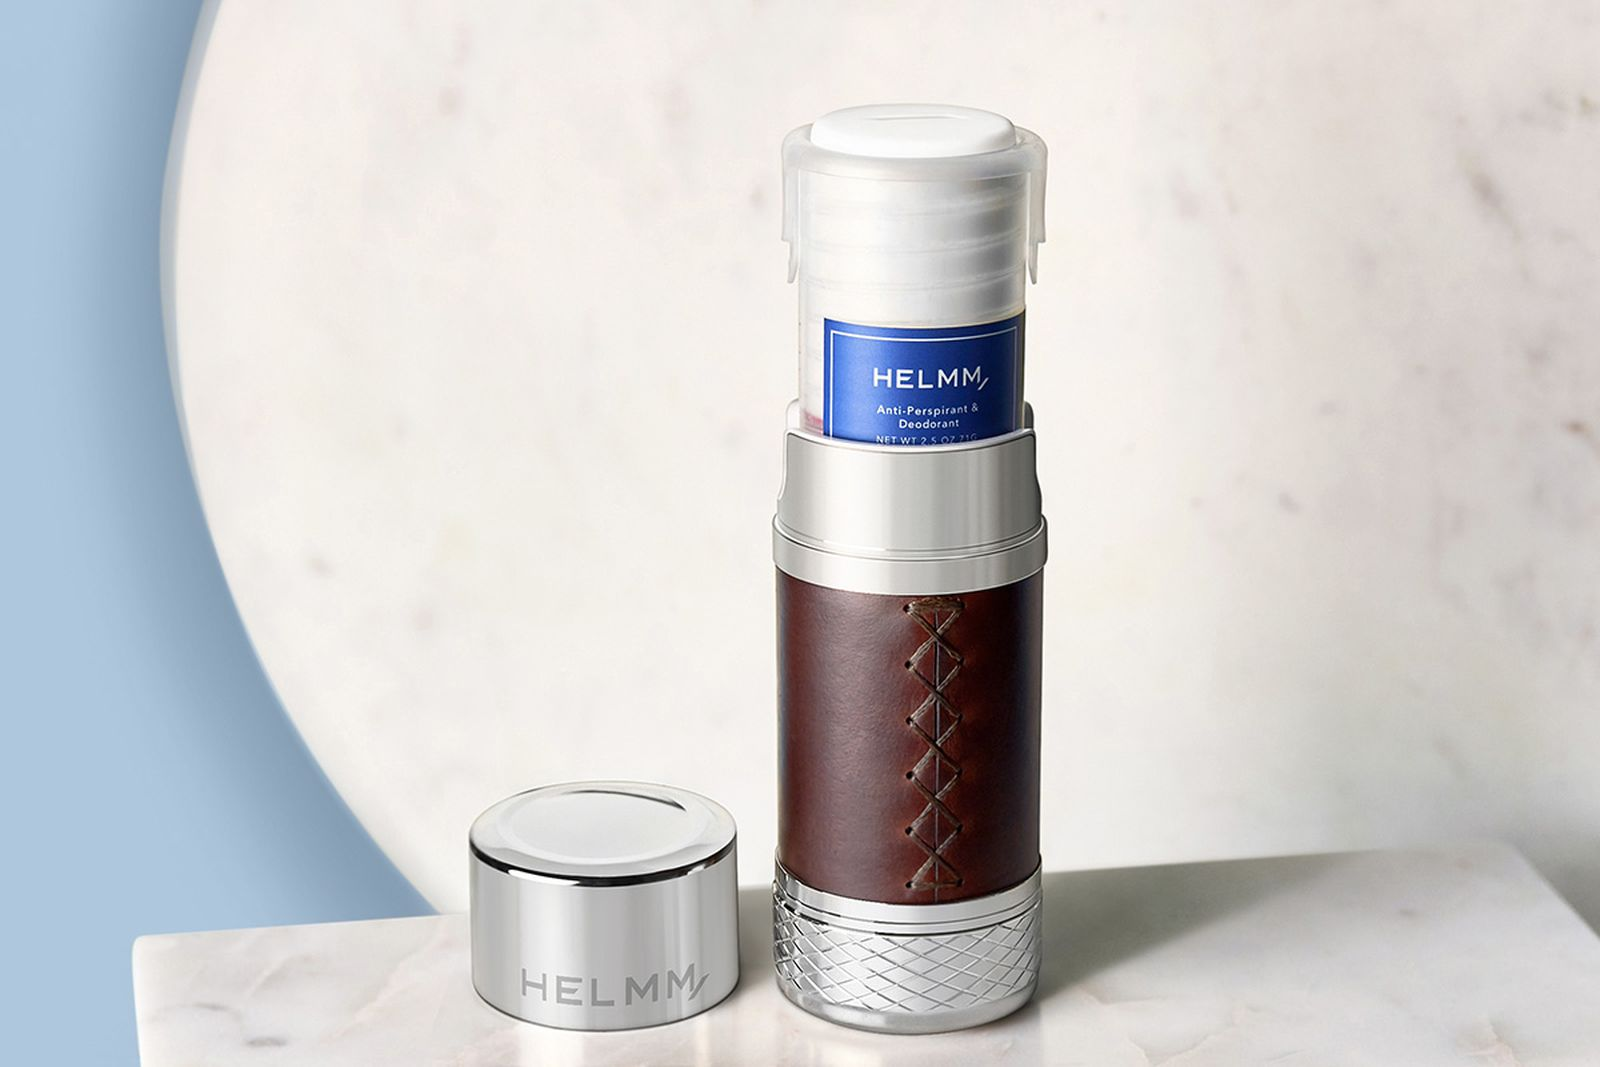 helmm refillable deodorant antiperspirant